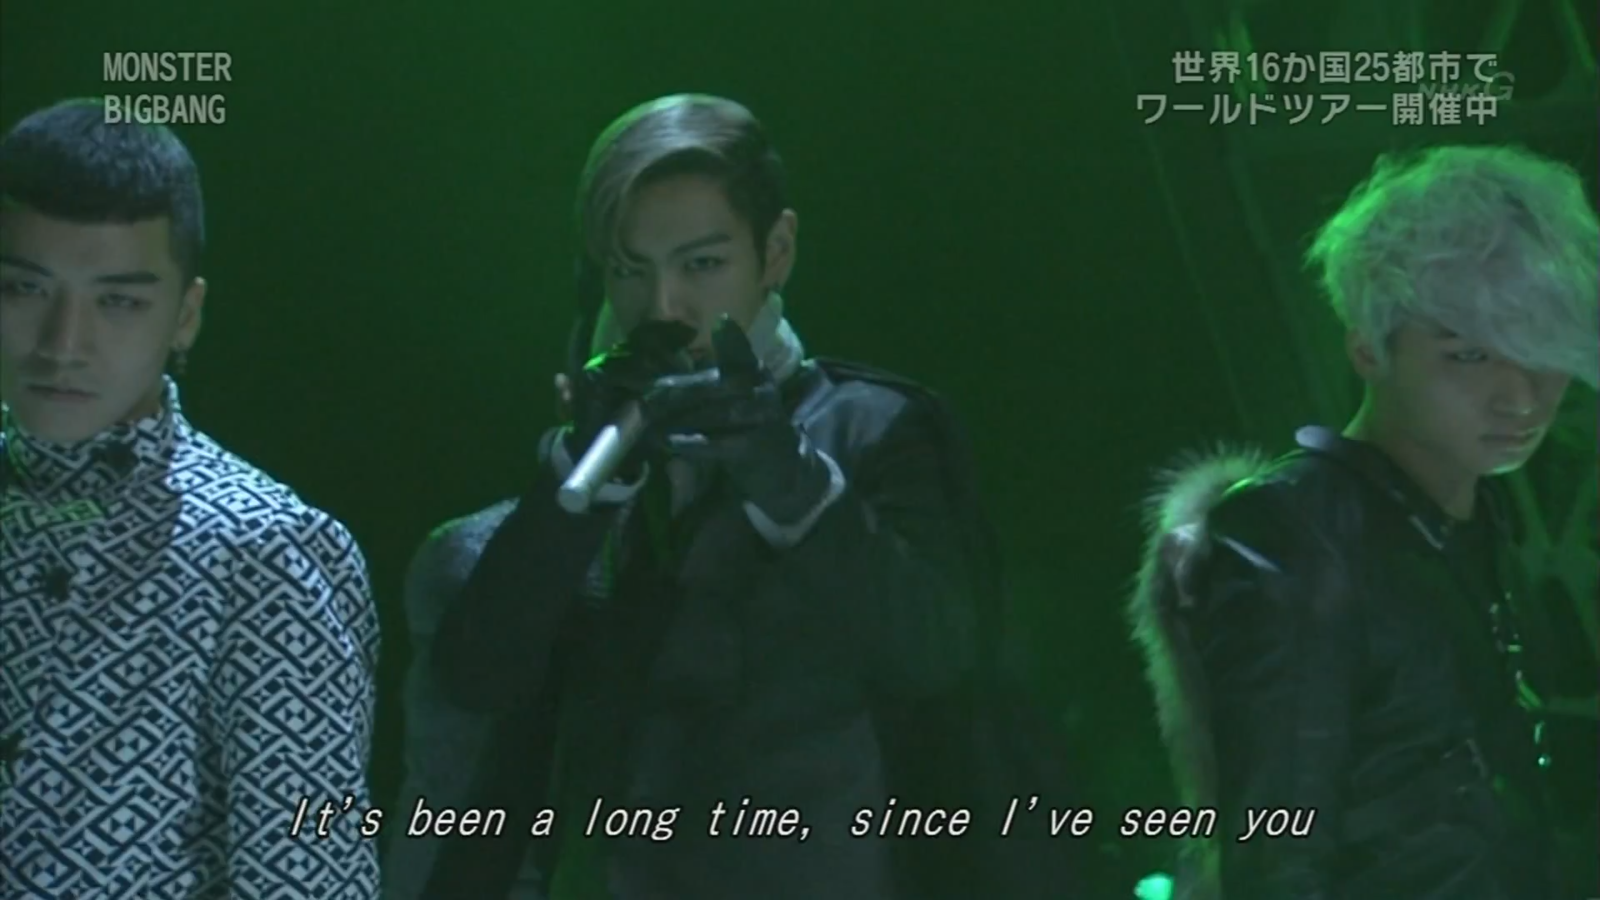 """Still from Big Bang's Live Performance of """"Monster"""" on Japanese TV"""